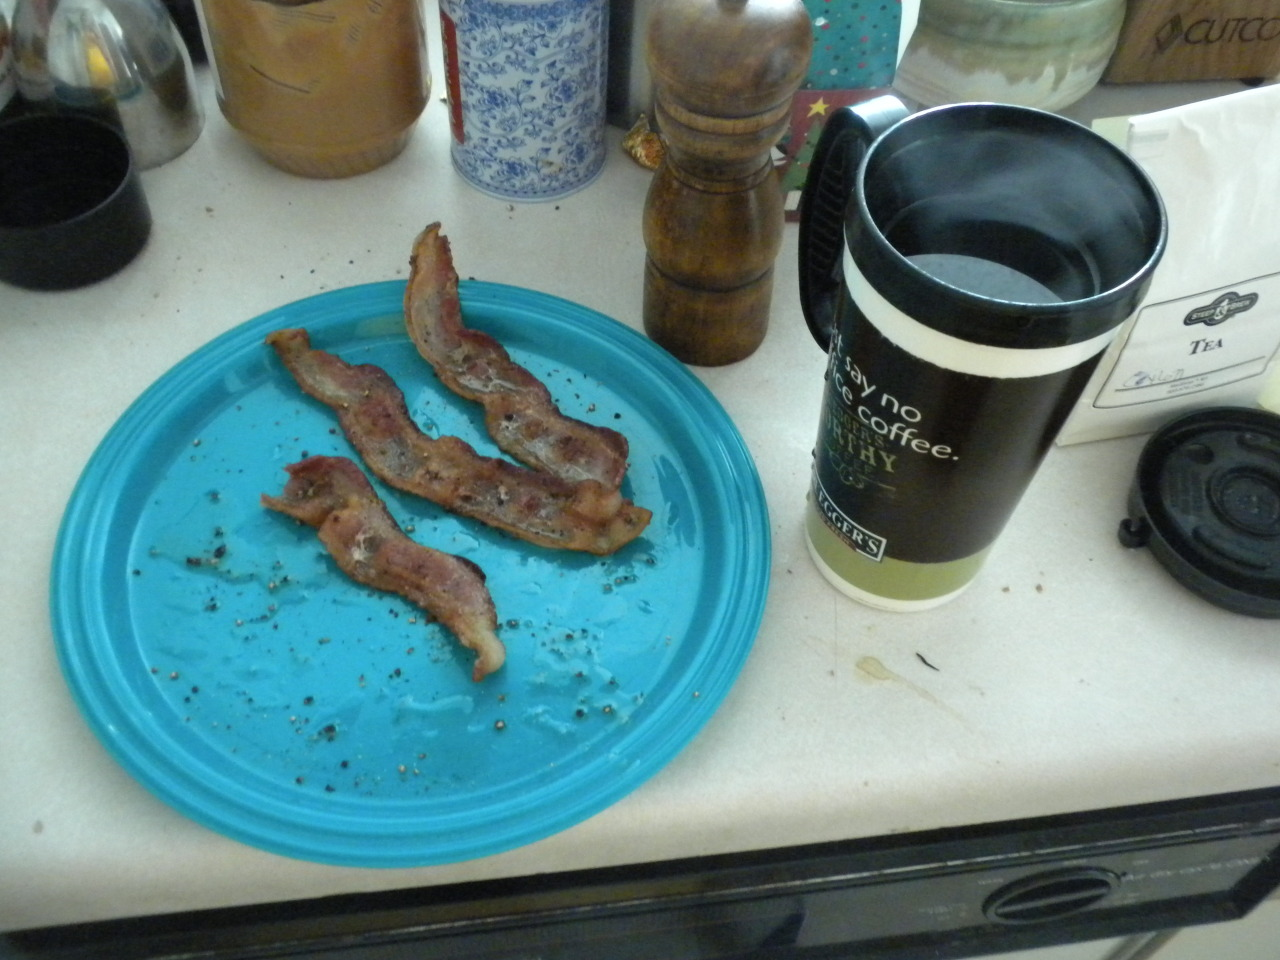 bearmodemn:  Today's pre workout meal- bacon, black coffee, and a burning desire to lift heavy things.